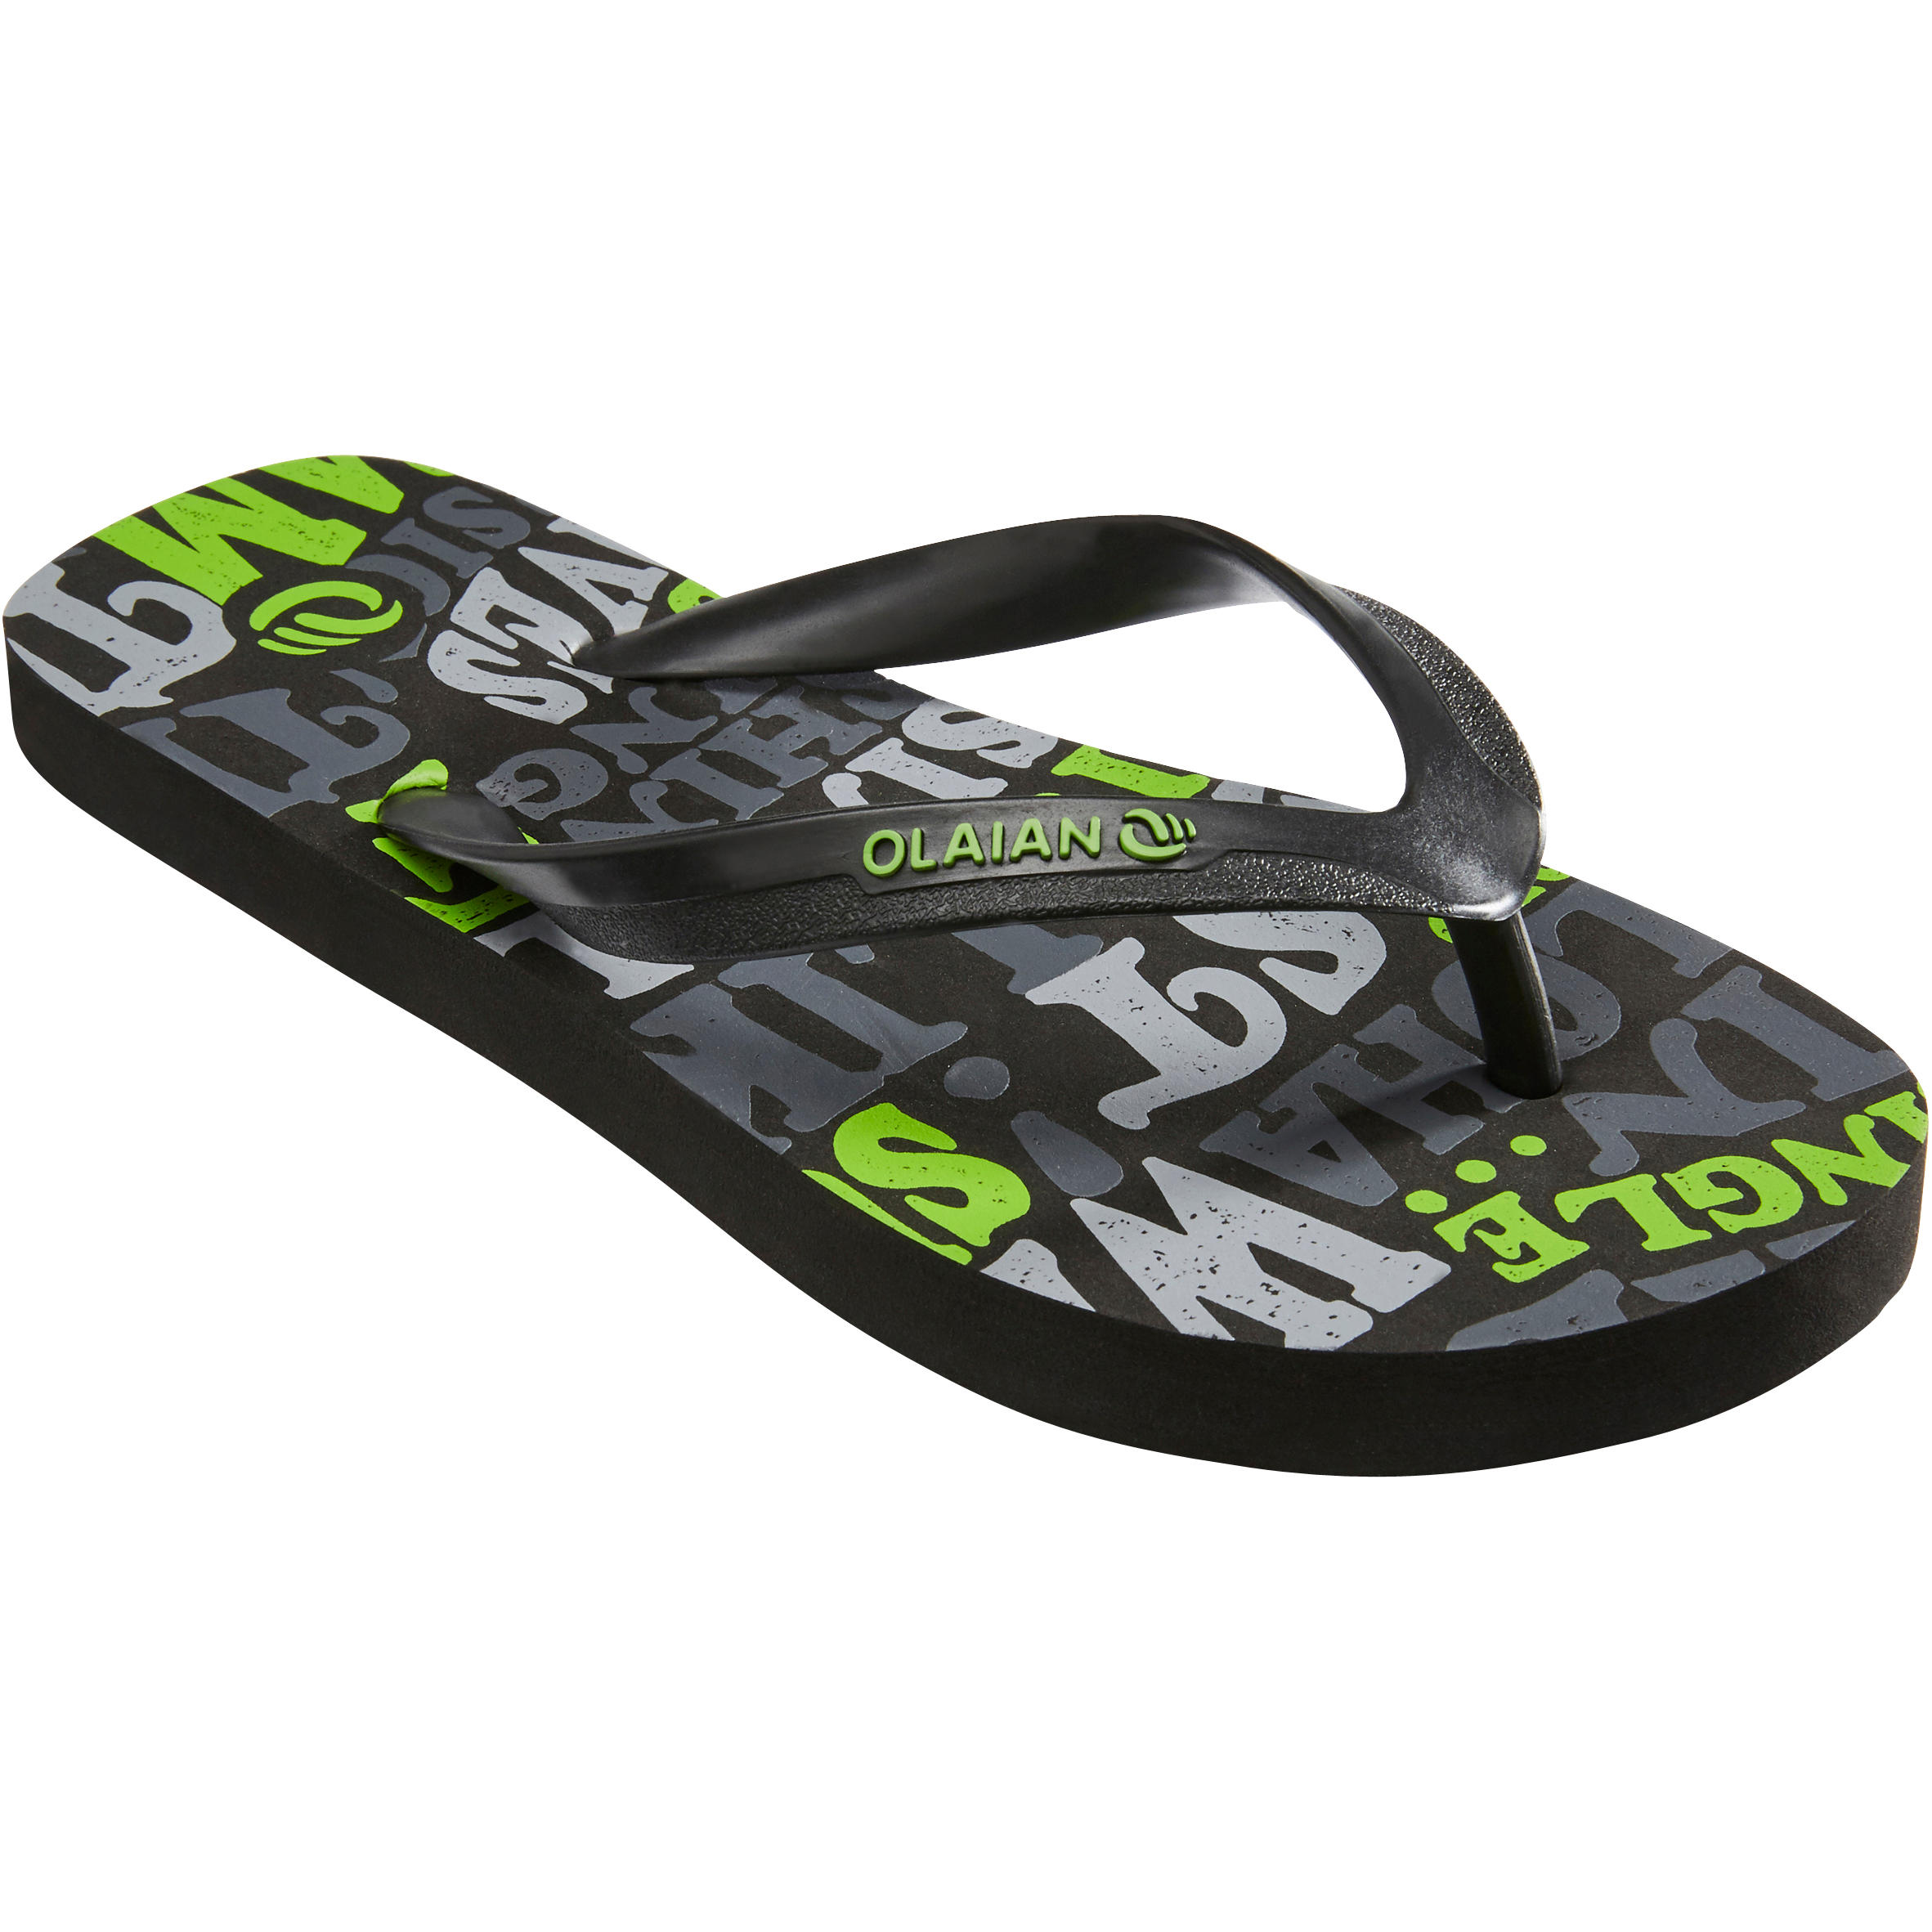 TO 120 Boys' Flip-Flops - Words Black